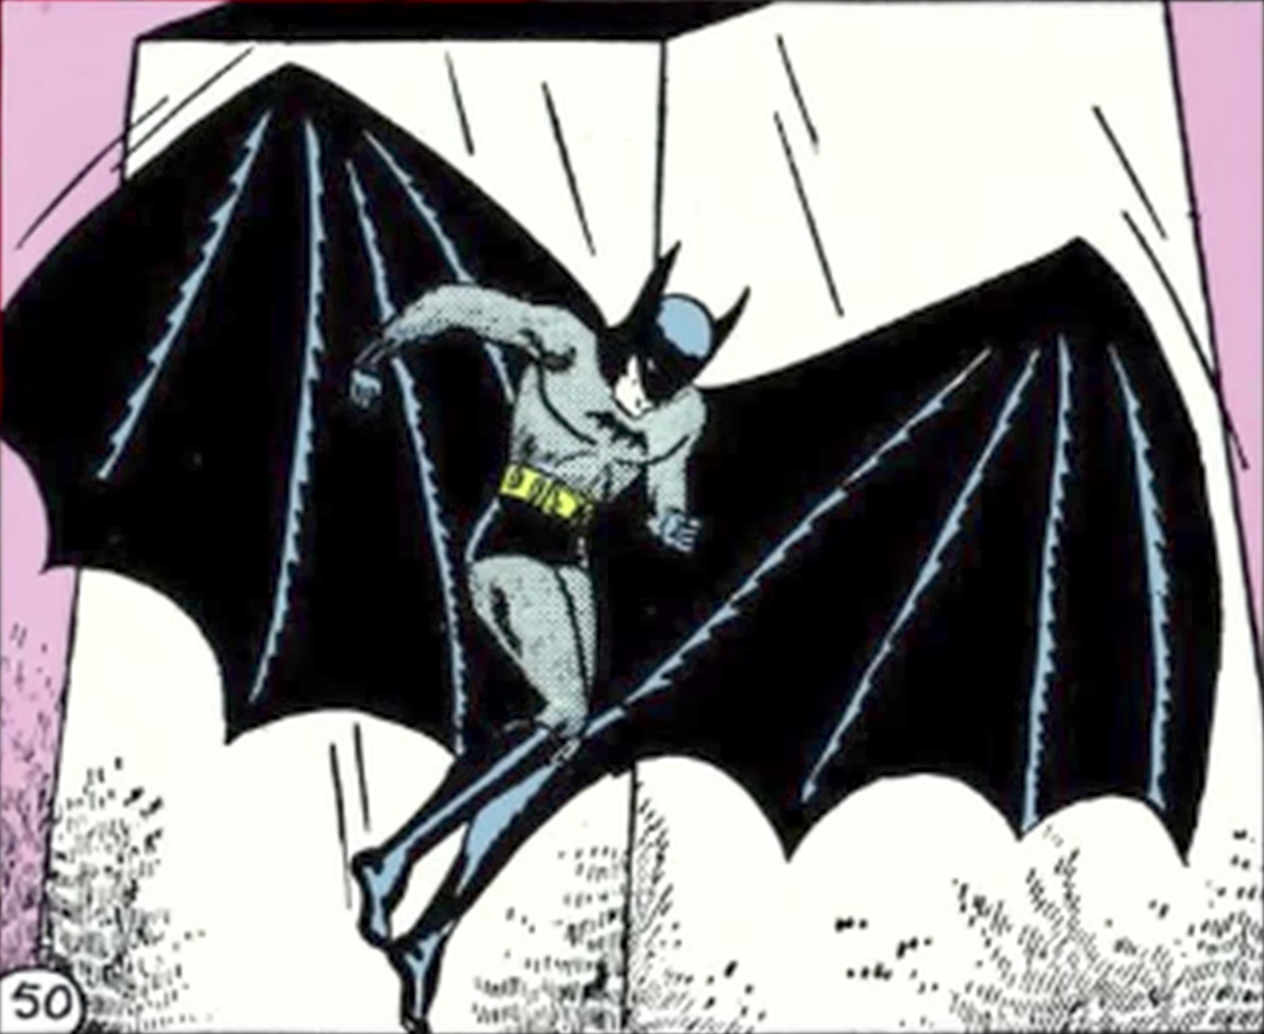 Unsung Batman co-writer Bill Finger is getting the fame he deserves with a Bronx street named after him